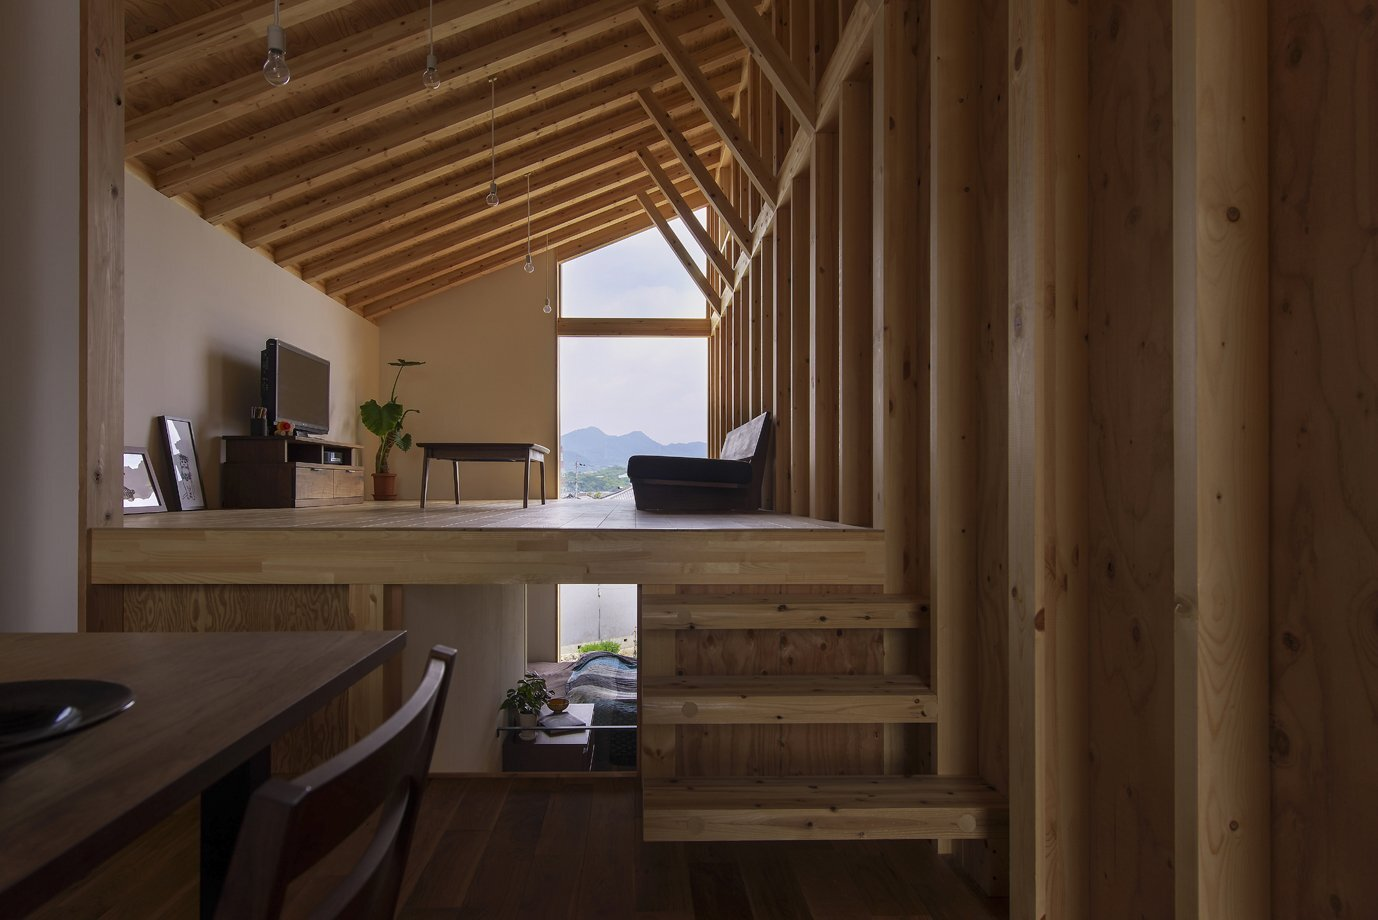 House for Pottery Festival - Office for Environment Architecture - Japan - Living Room - Humble Homes